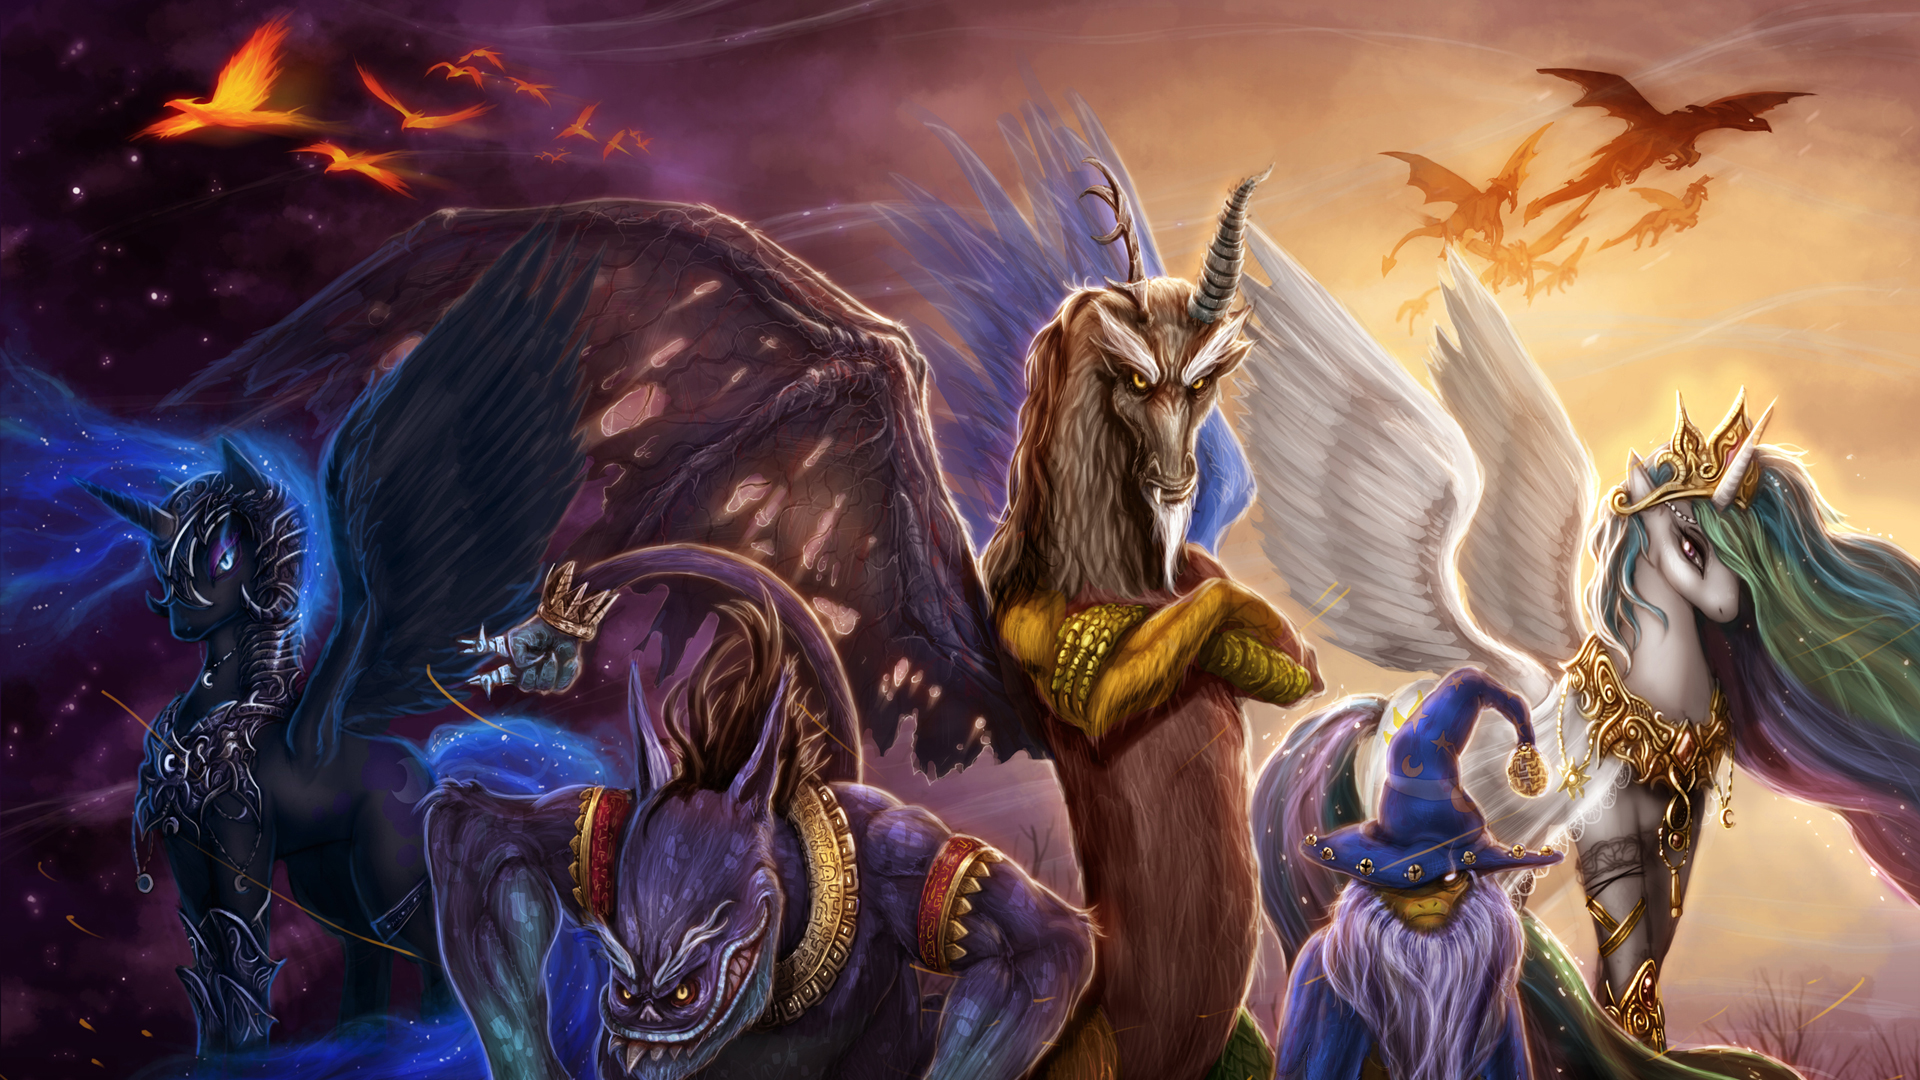 Mlp Legends Of Equestria Wallpaper 1080p From Shadow Of